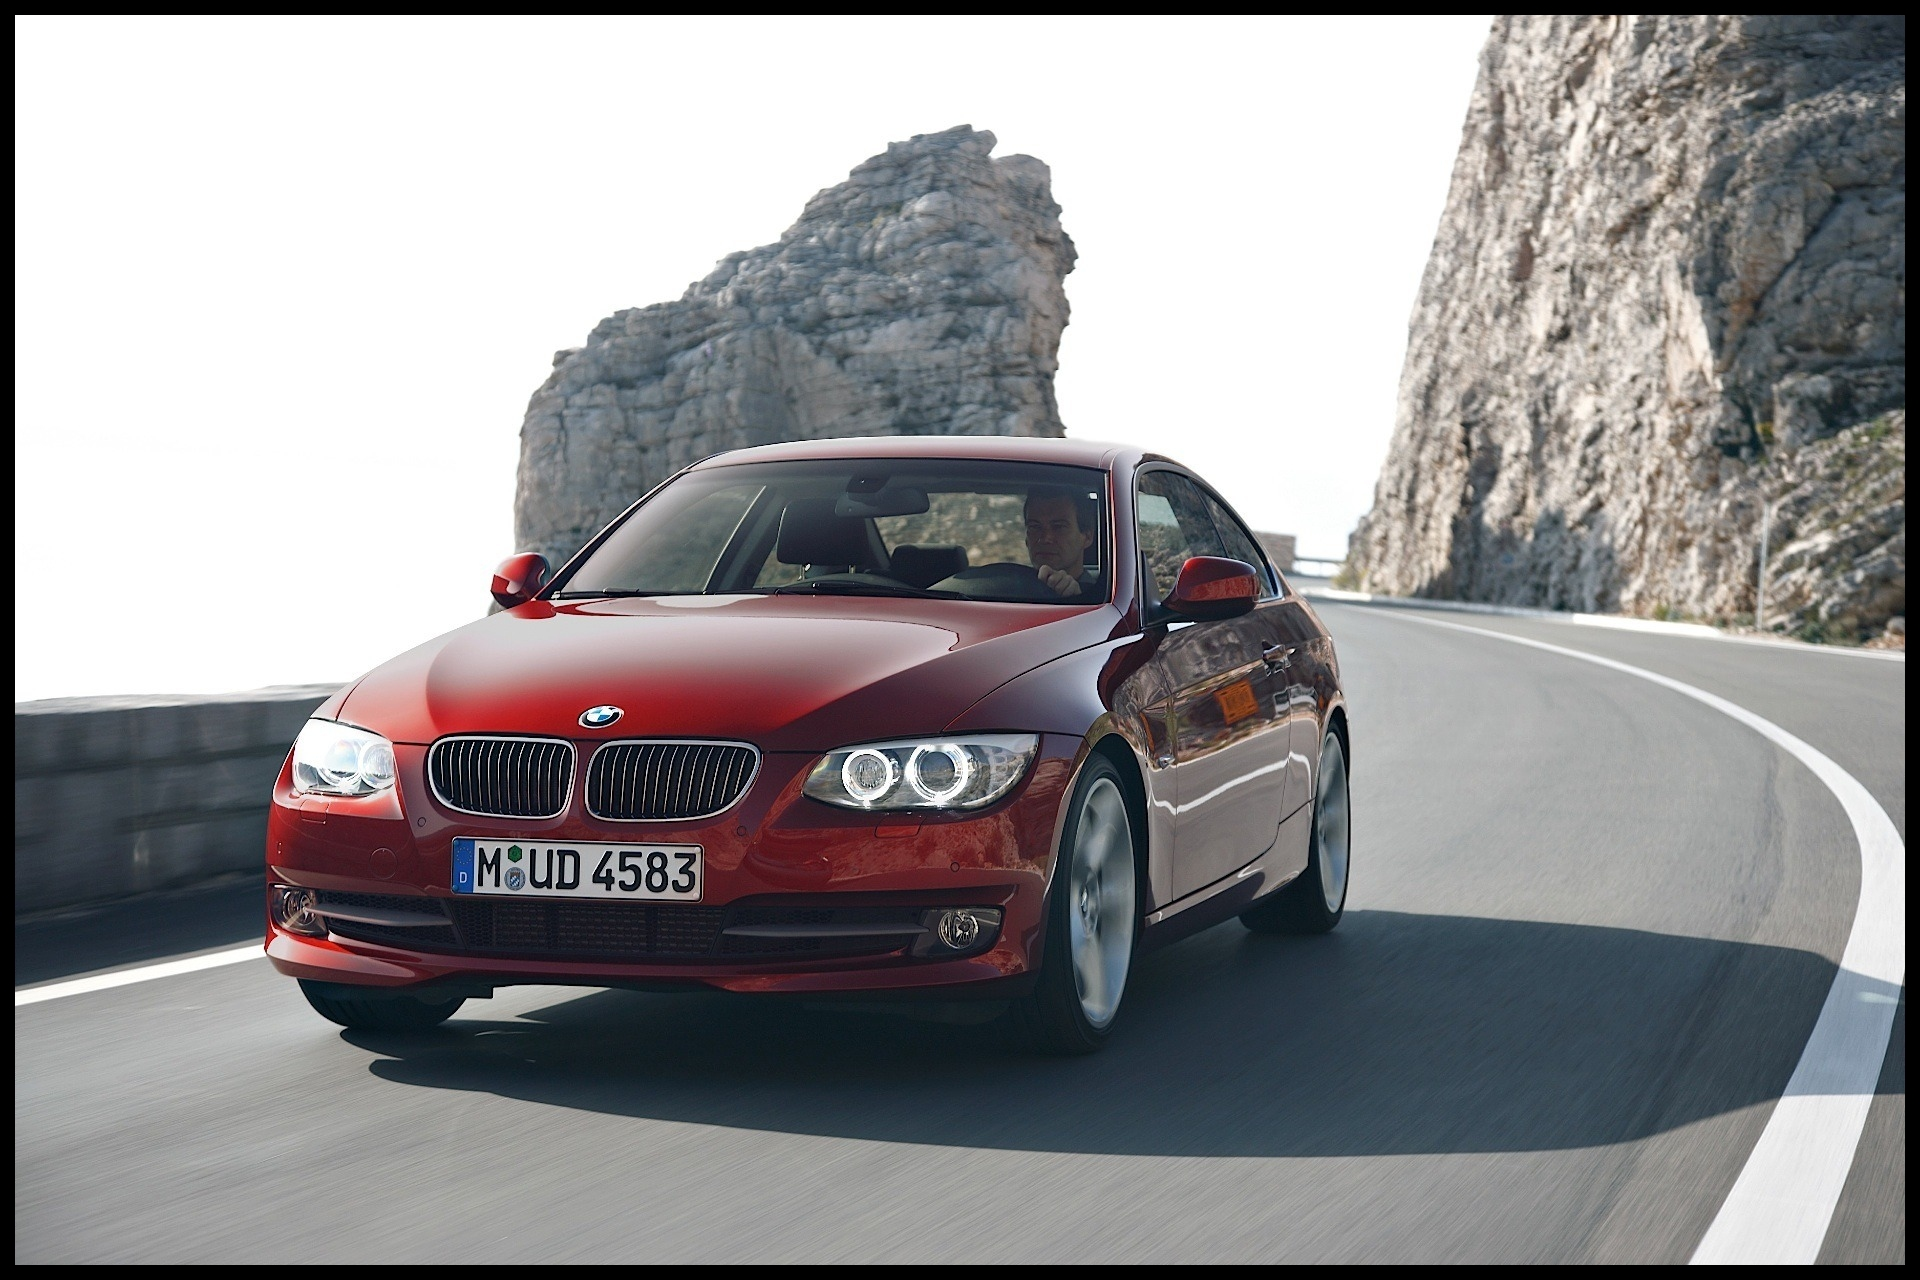 2011 Bmw 3 Series Brochure Inspirational Bmw 3 Series Coupe E92 Specs 2010 2011 2012 2013